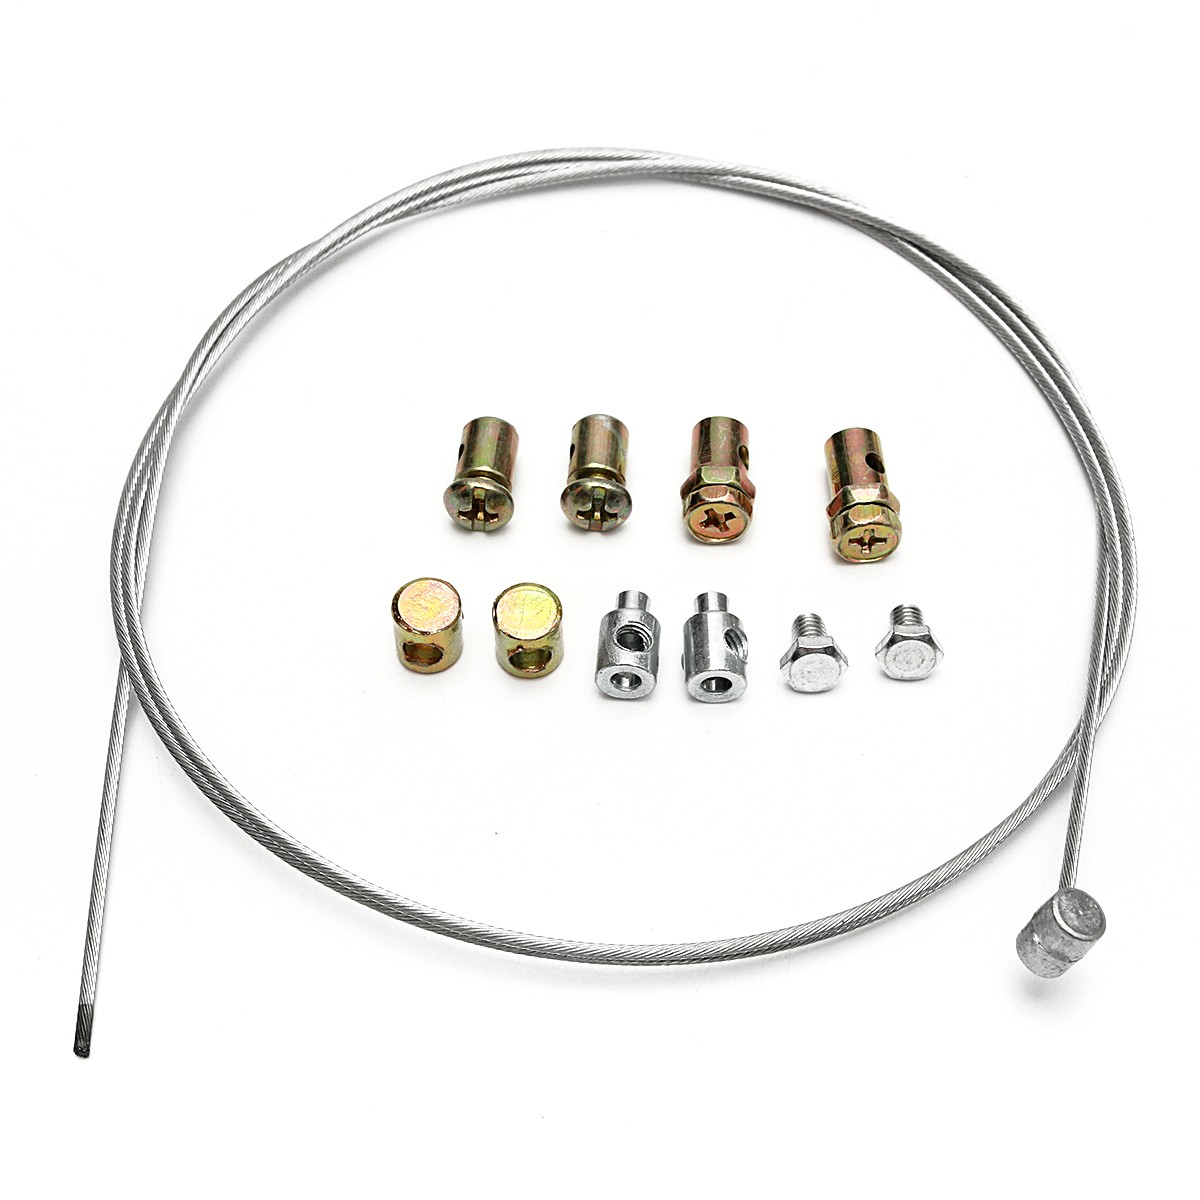 1 Set Motorcycle Emergency Throttle Cable Repair Kit for